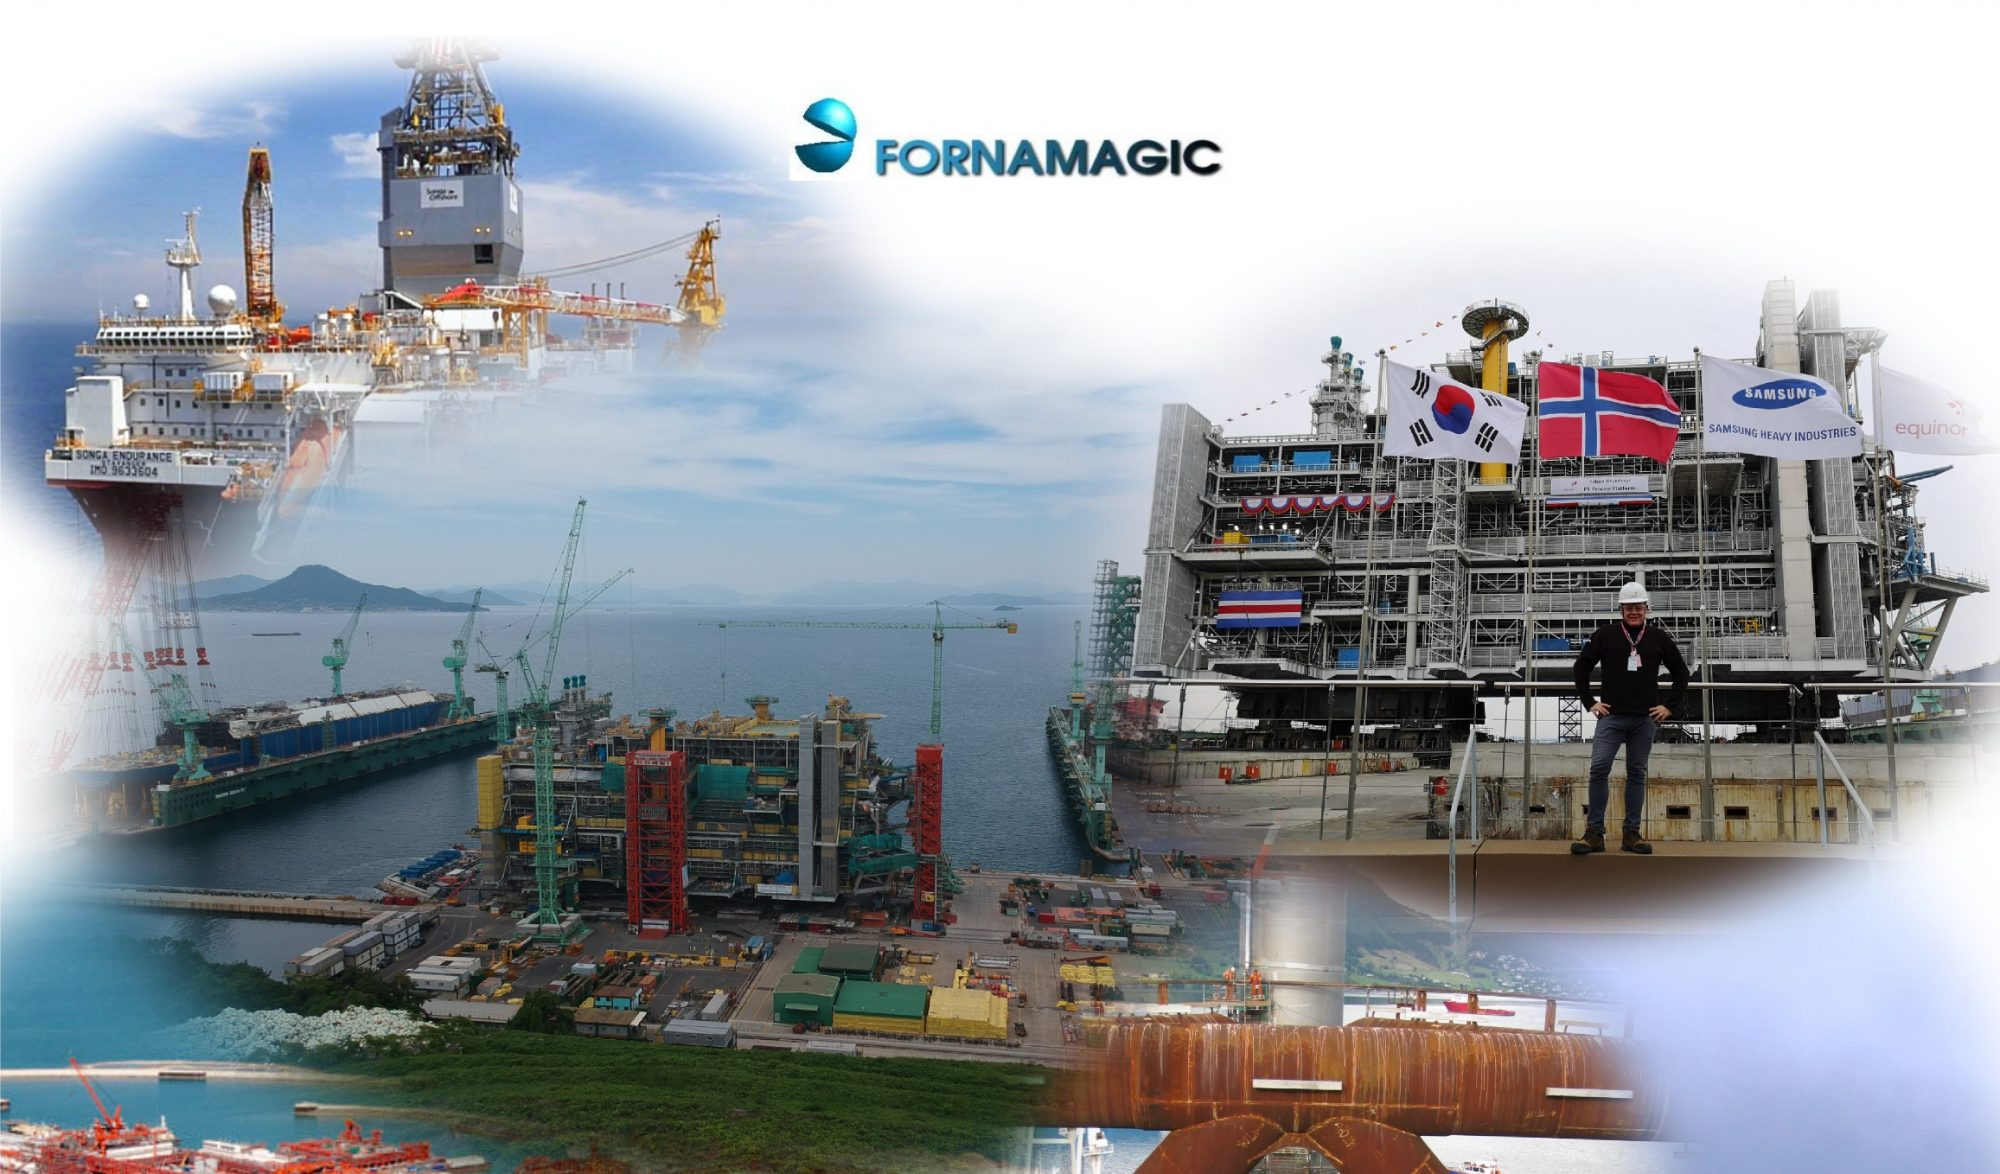 Fornamagic Ltd